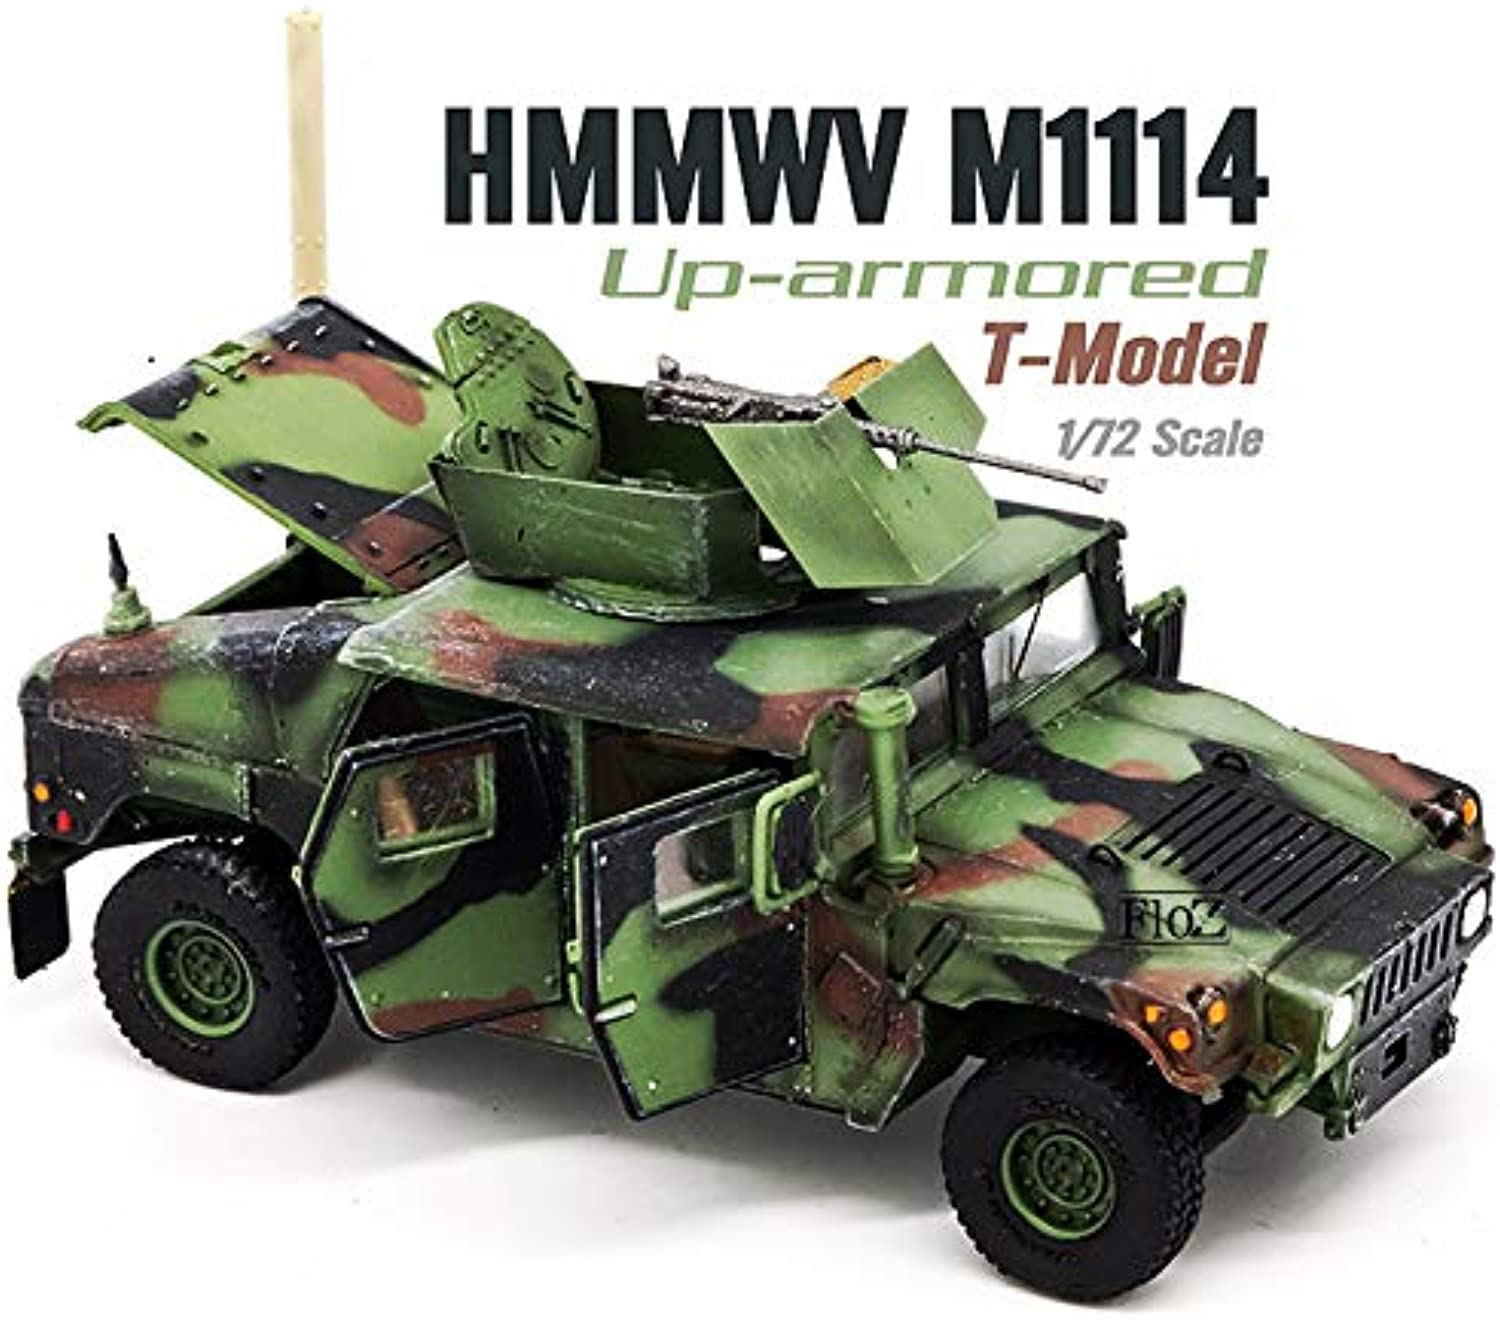 FLOZ USA HMMWV M1114 DOORS CAN BE OPENED SPECIAL VERSION 1 72 FINISHED TANK MODEL